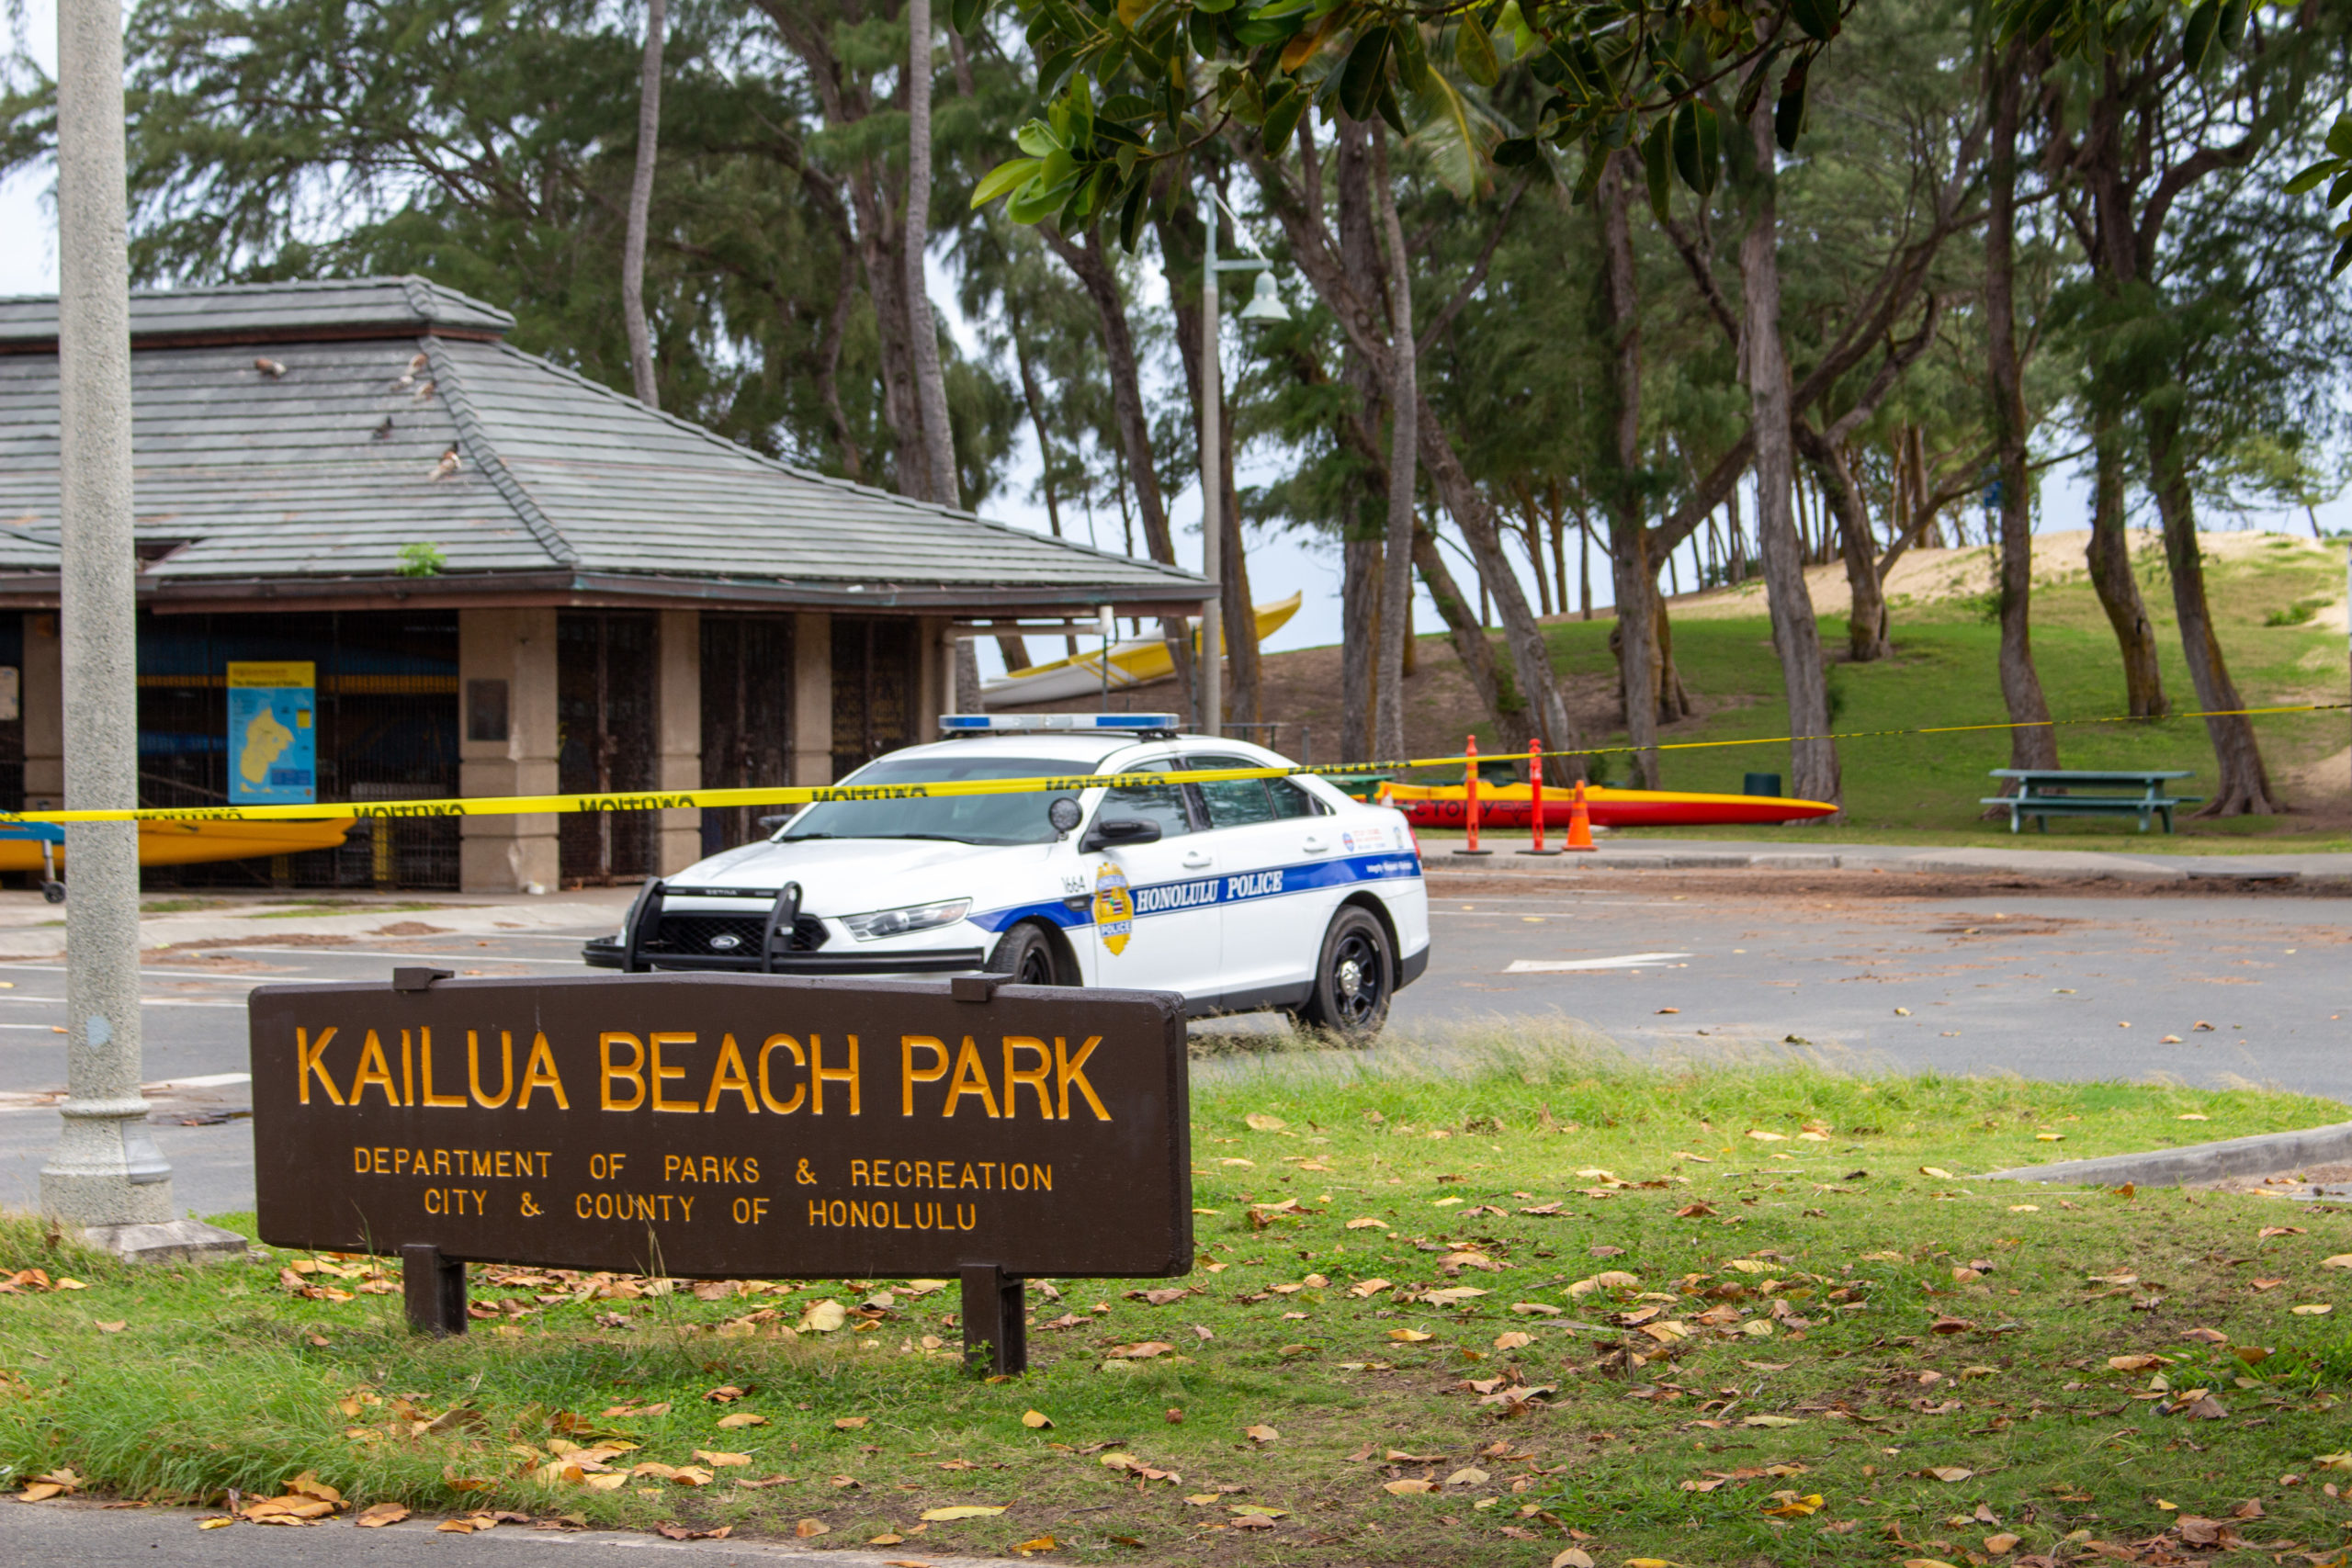 Beaches Parks Trails Closed Honolulu Mayor S Covid 19 Rules Defy Science Experts Say Honolulu Civil Beat Cumulative totals reported to date. beaches parks trails closed honolulu